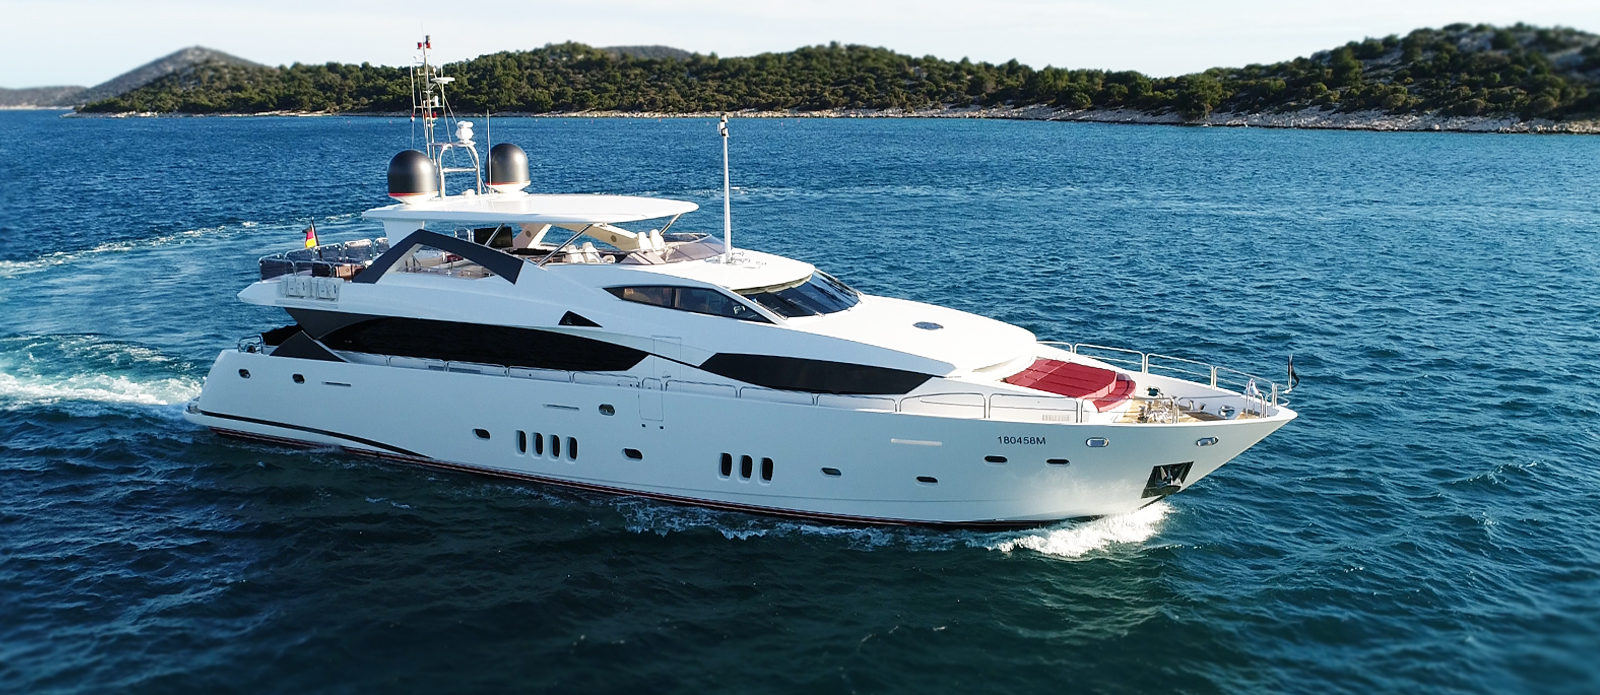 Sunseeker 34M White Pearl at Anchor in Croatia